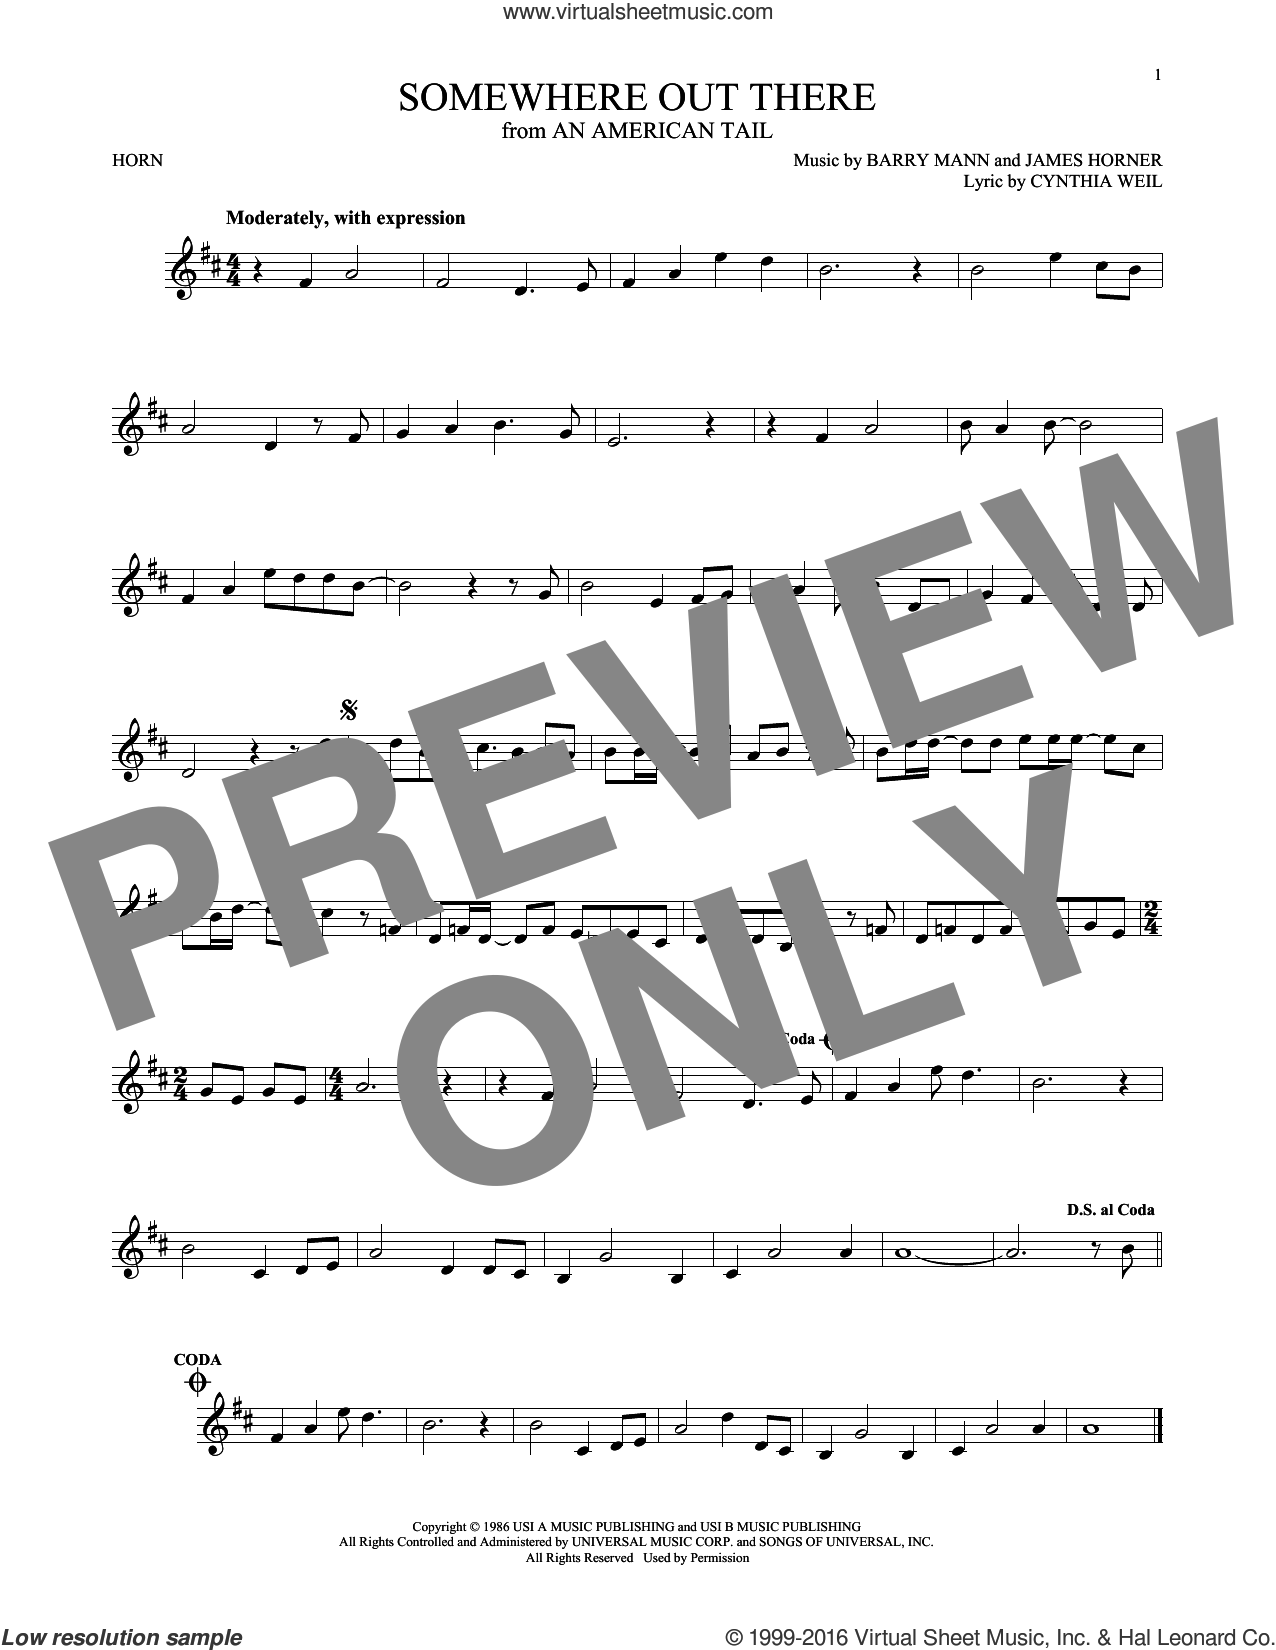 Somewhere Out There sheet music for horn solo by James Horner, Linda Ronstadt & James Ingram, Barry Mann and Cynthia Weil. Score Image Preview.